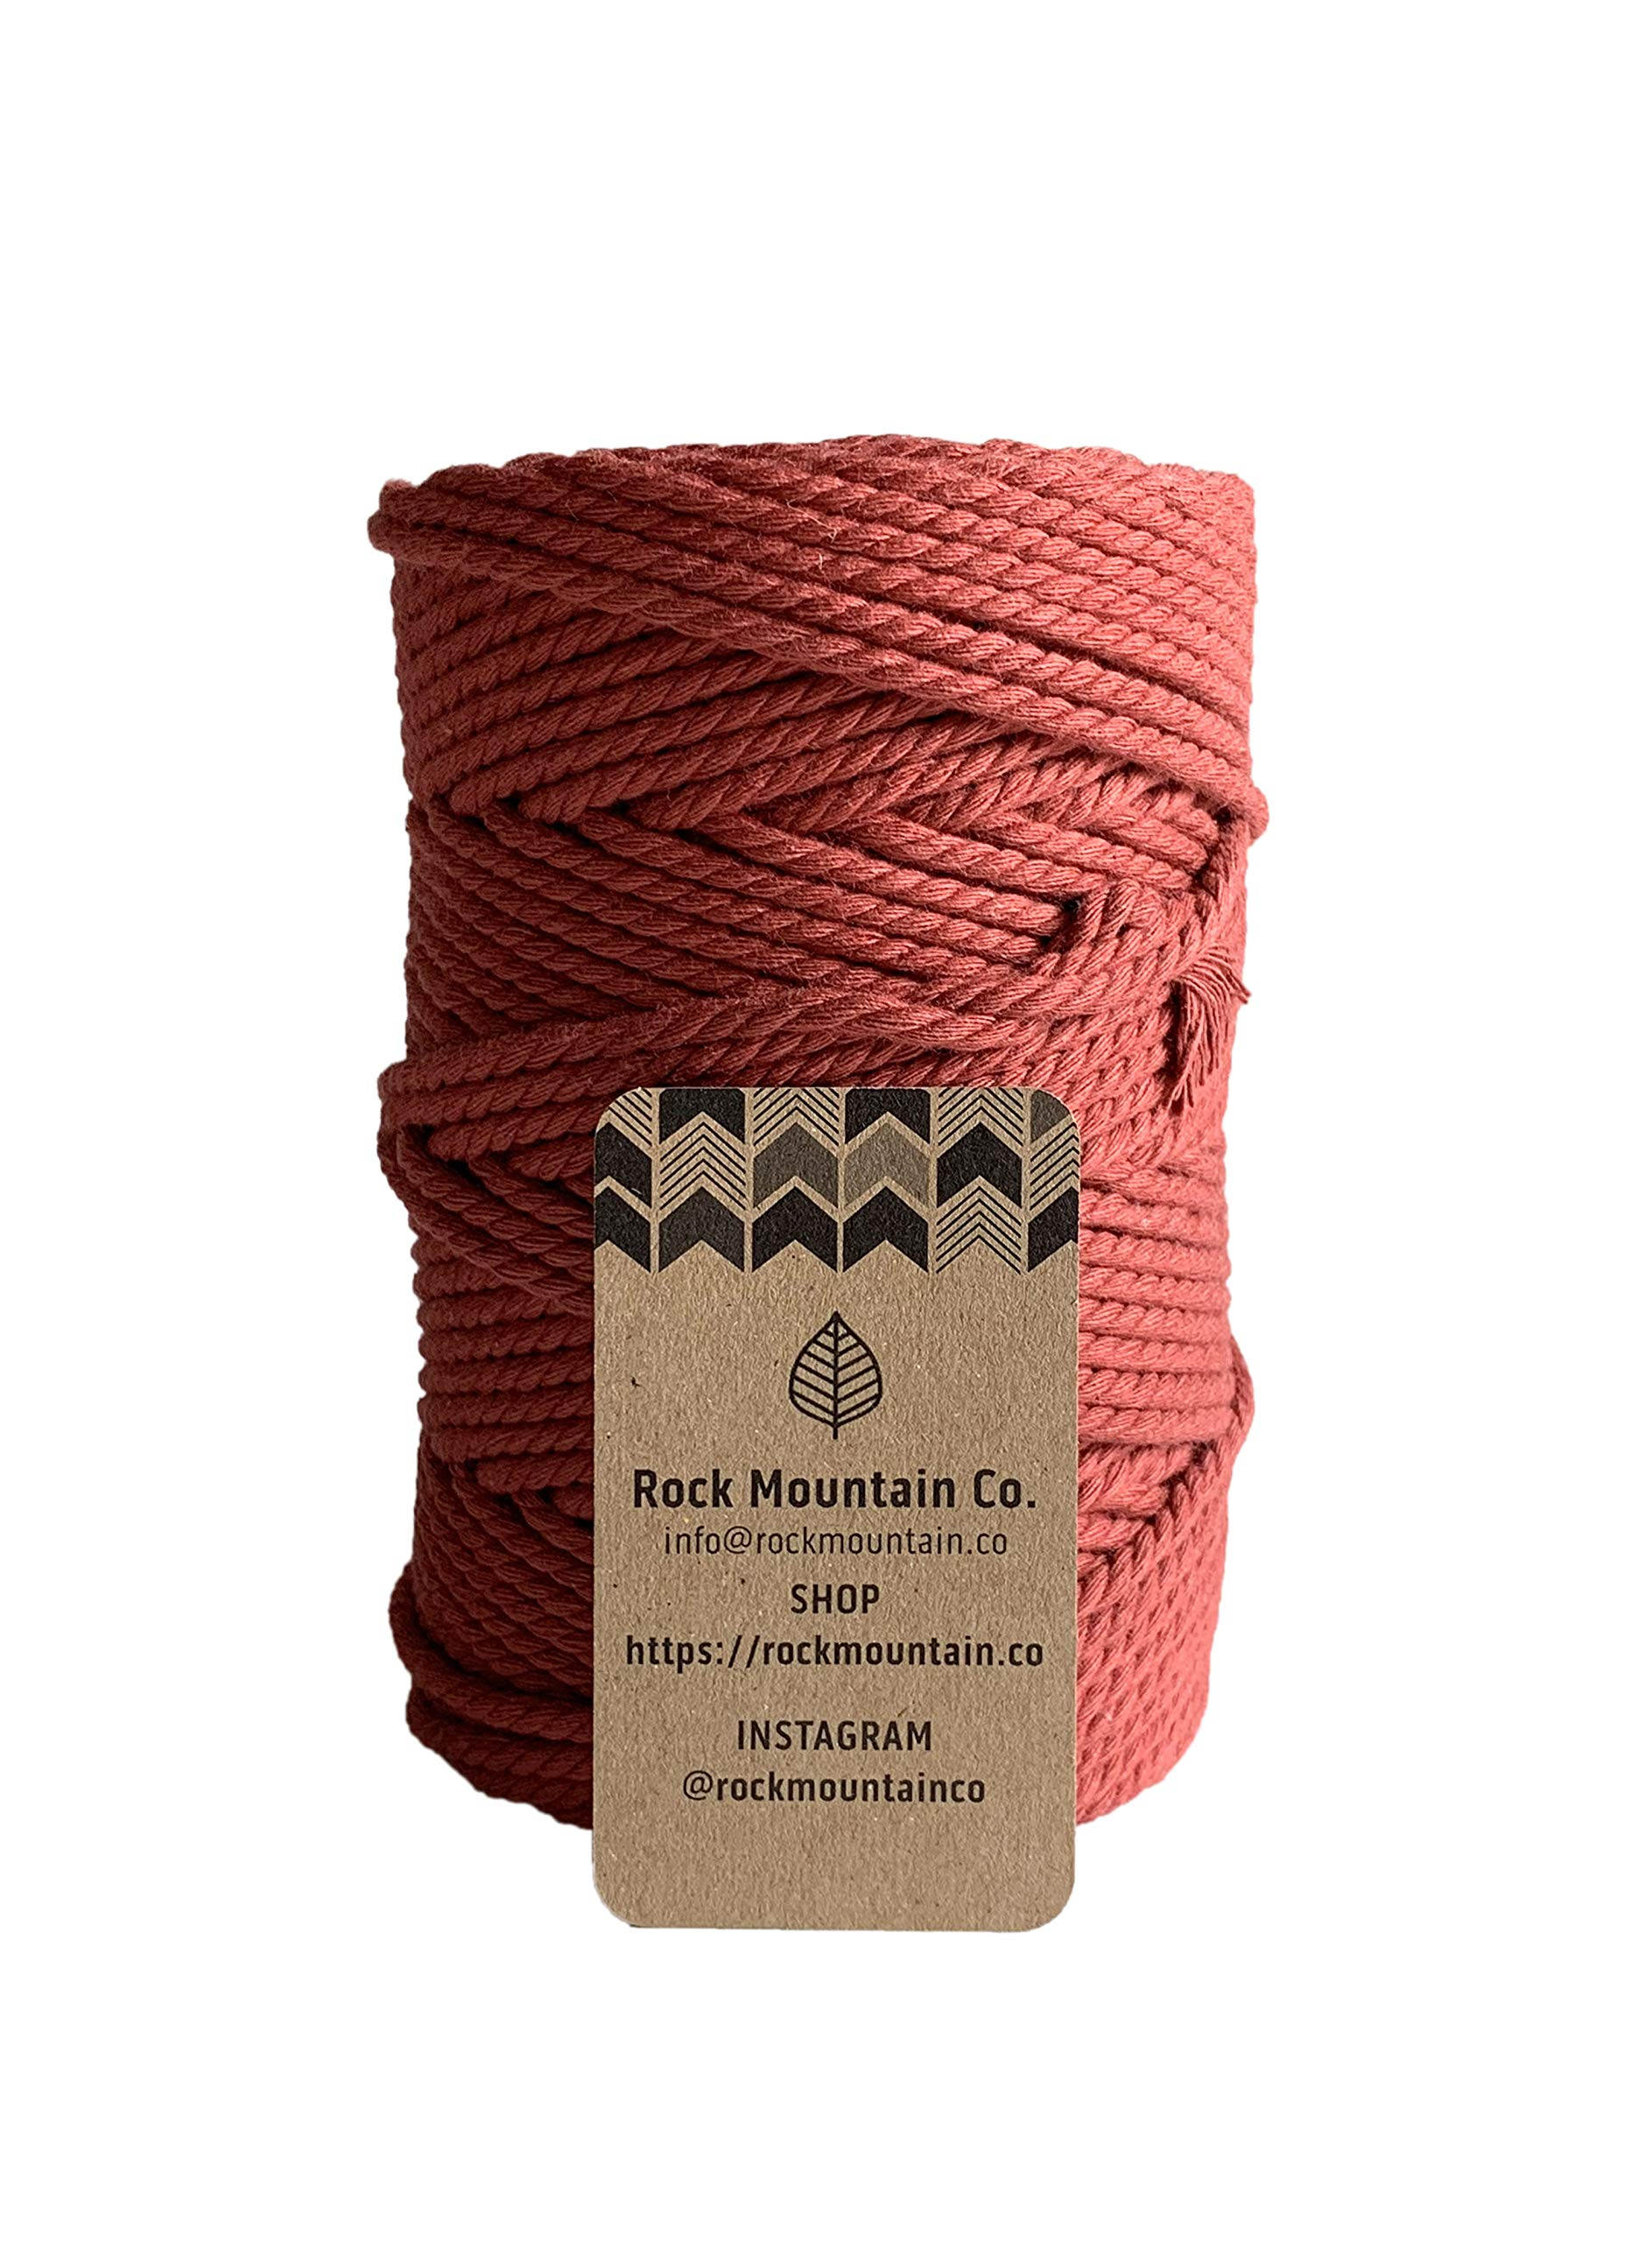 4mm 3 Strand Twisted Macrame Rope - Chili Red